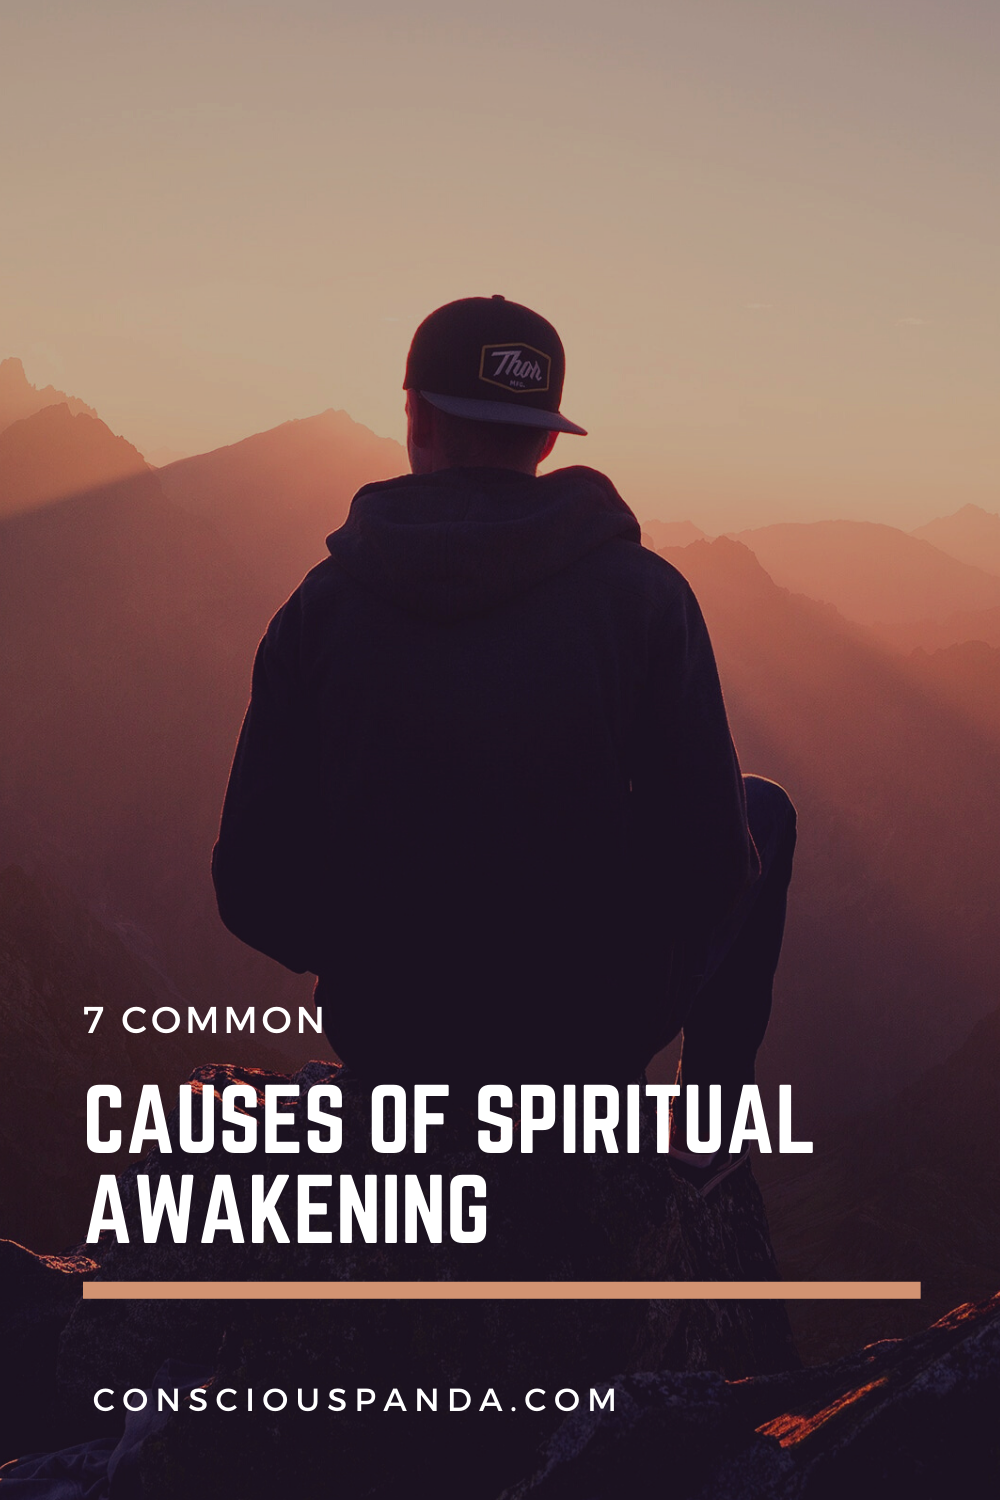 7 Common Causes of Spiritual Awakening